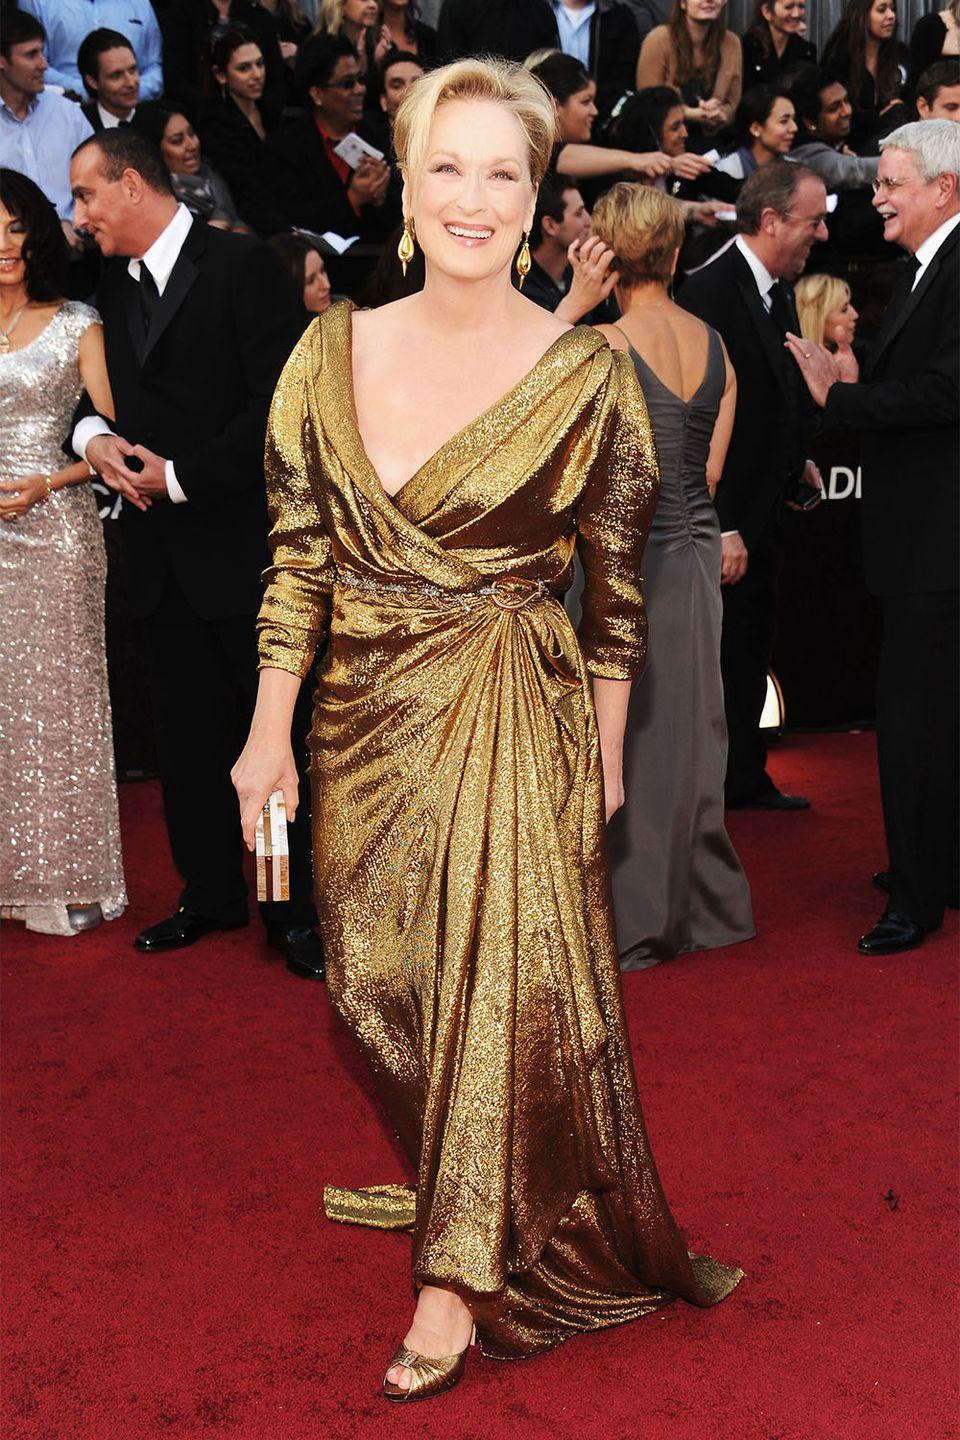 <p>Lanvin was always a go-to for Meryl Streep, and this gilded number was quite bold for the actress who always took a minimal approach to style. Streep also took home the gold for <em>The Iron Lady</em> that year. </p>